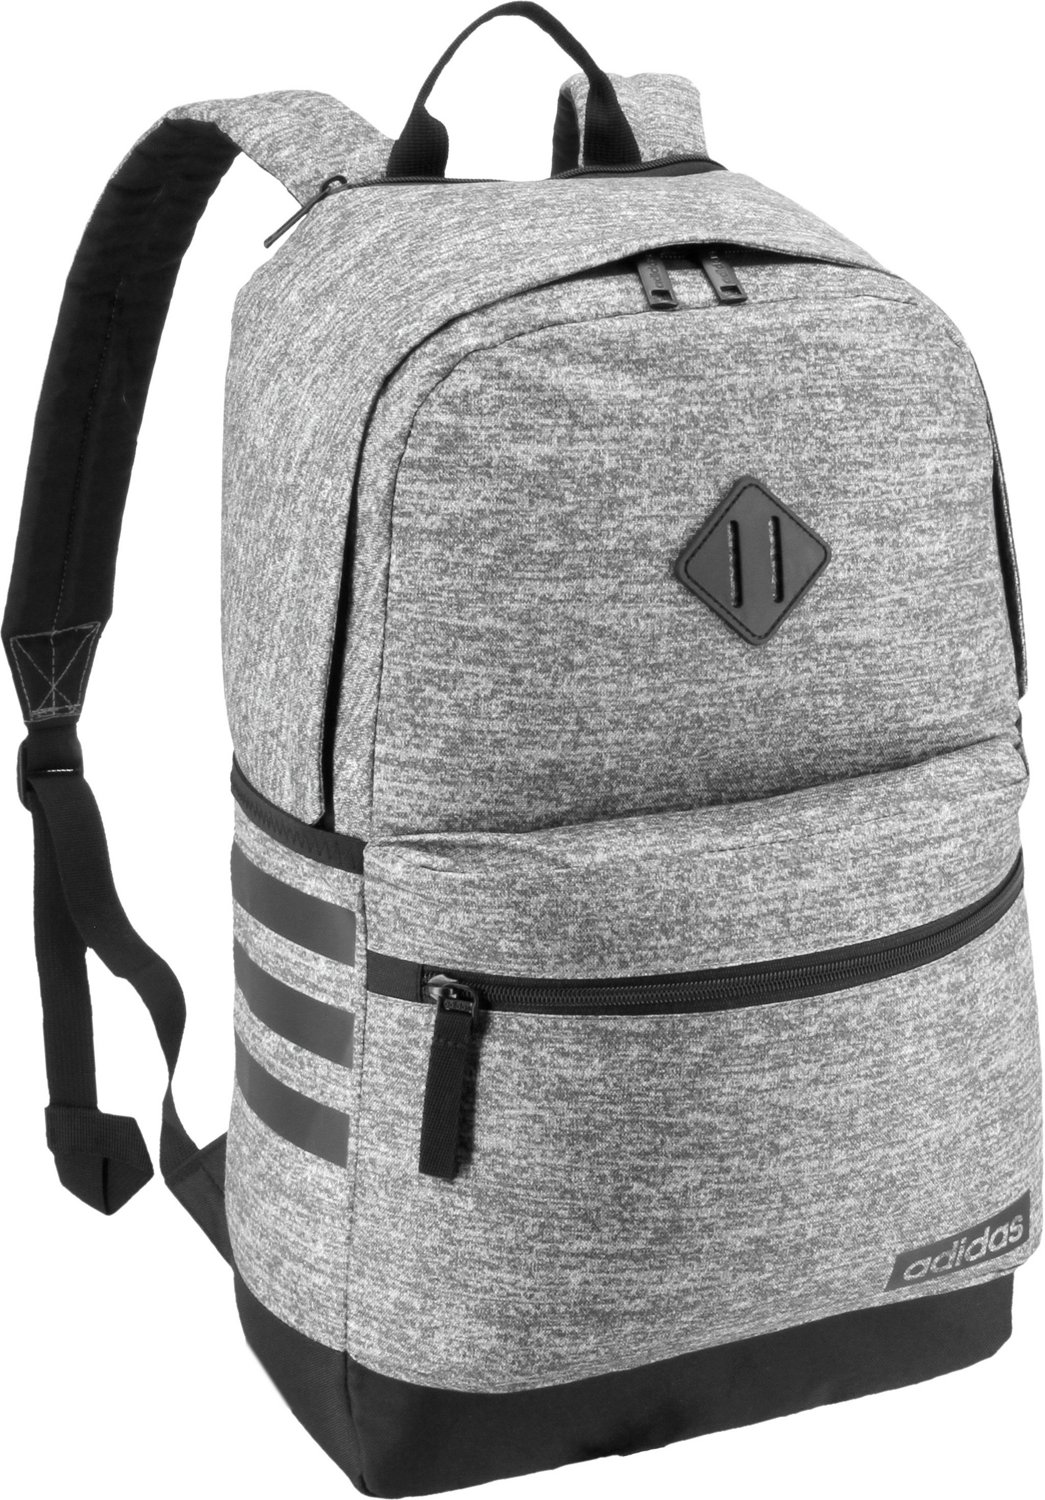 222d6555ff692 adidas Classic 3-Stripes Backpack